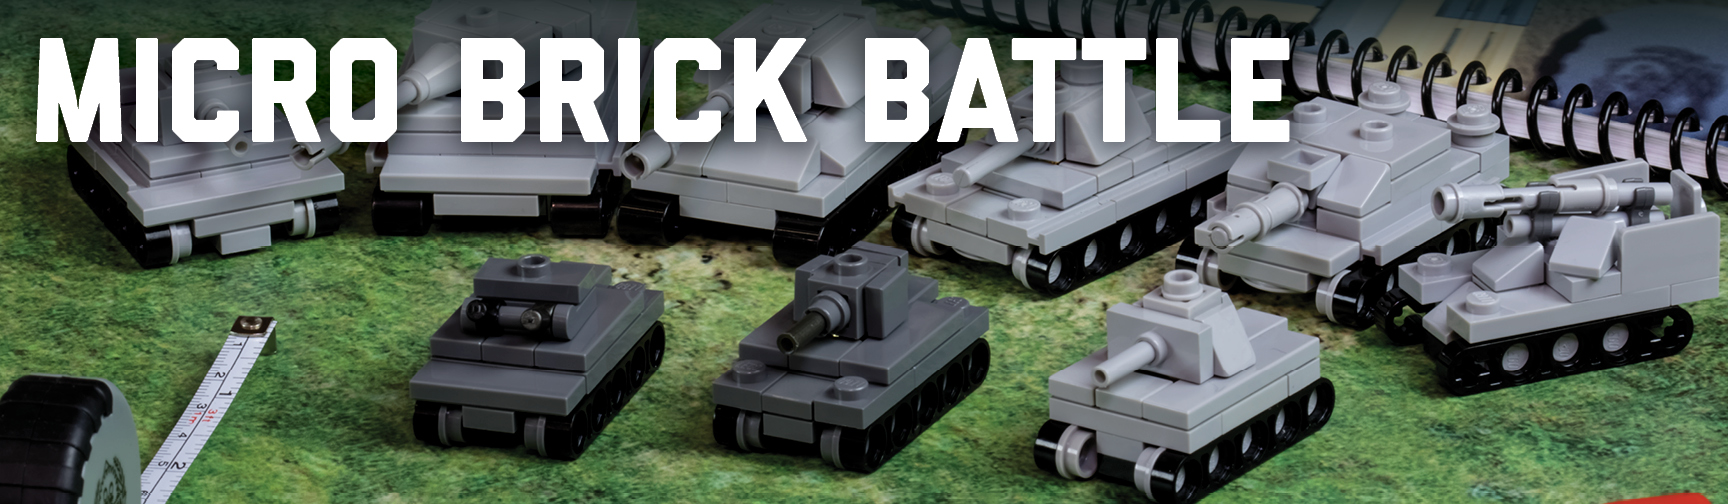 Micro Brick Battle - Brickmania Toys